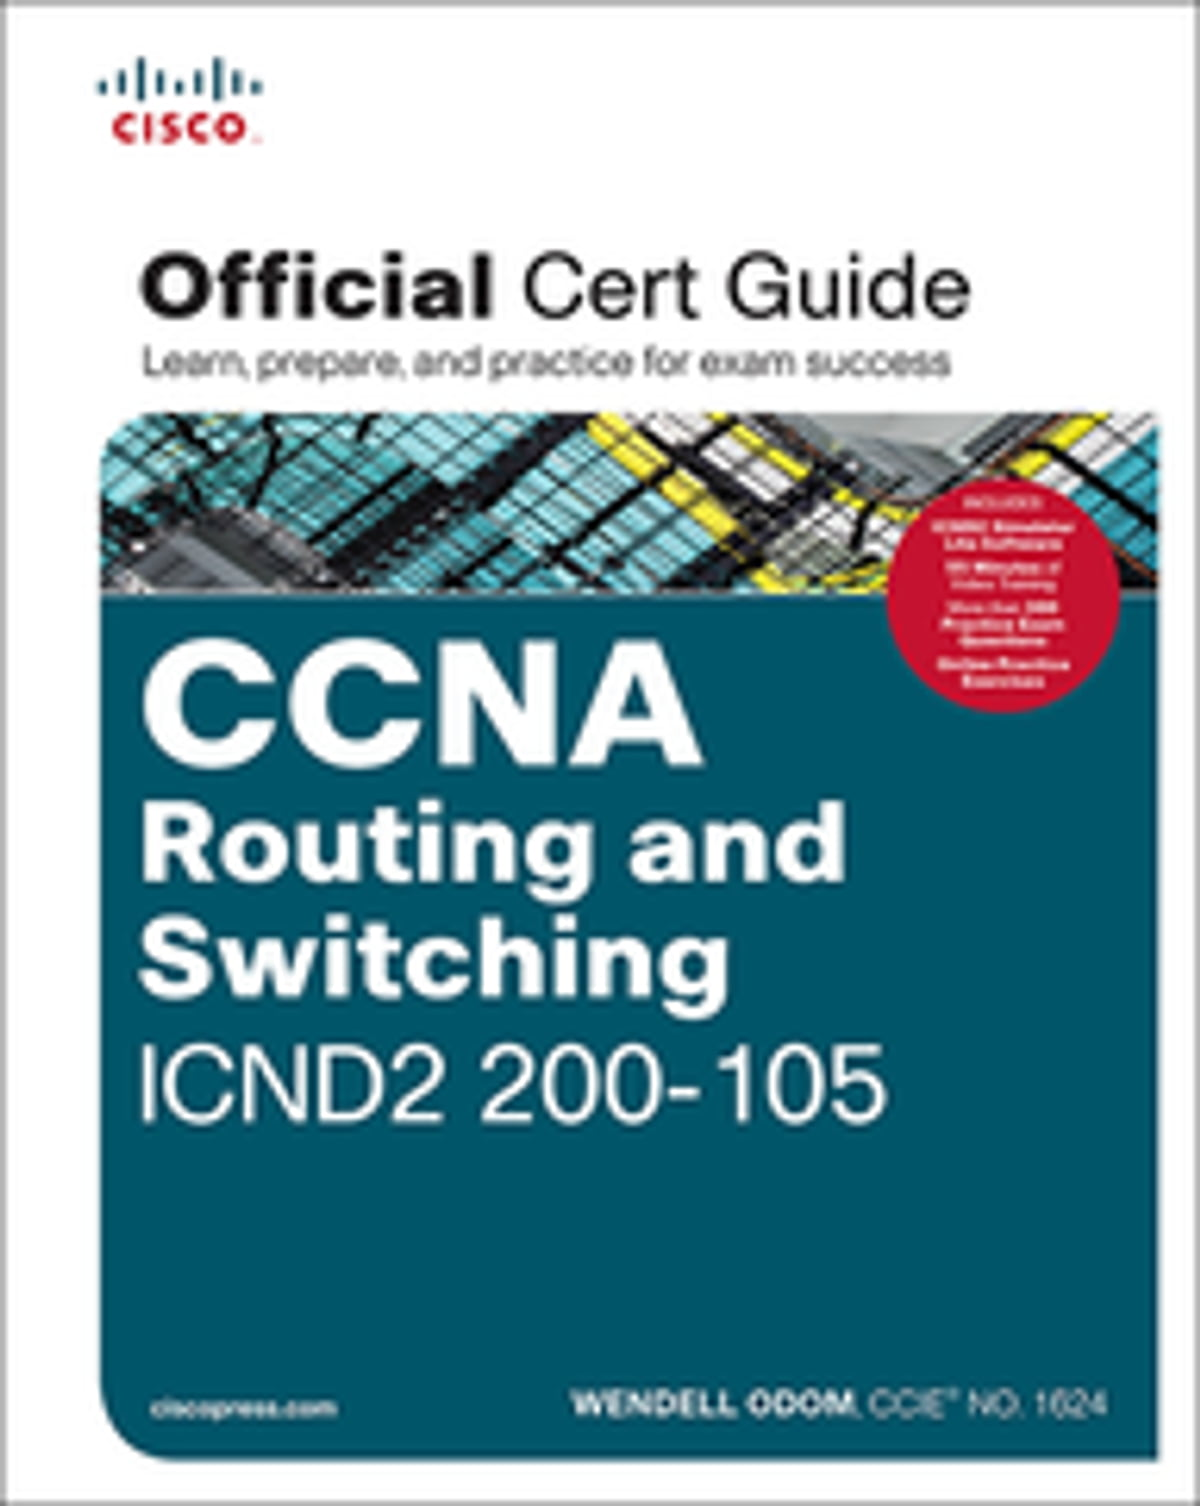 CCNA Routing and Switching ICND2 200-105 Official Cert Guide eBook by  Wendell Odom - 9780134441016 | Rakuten Kobo